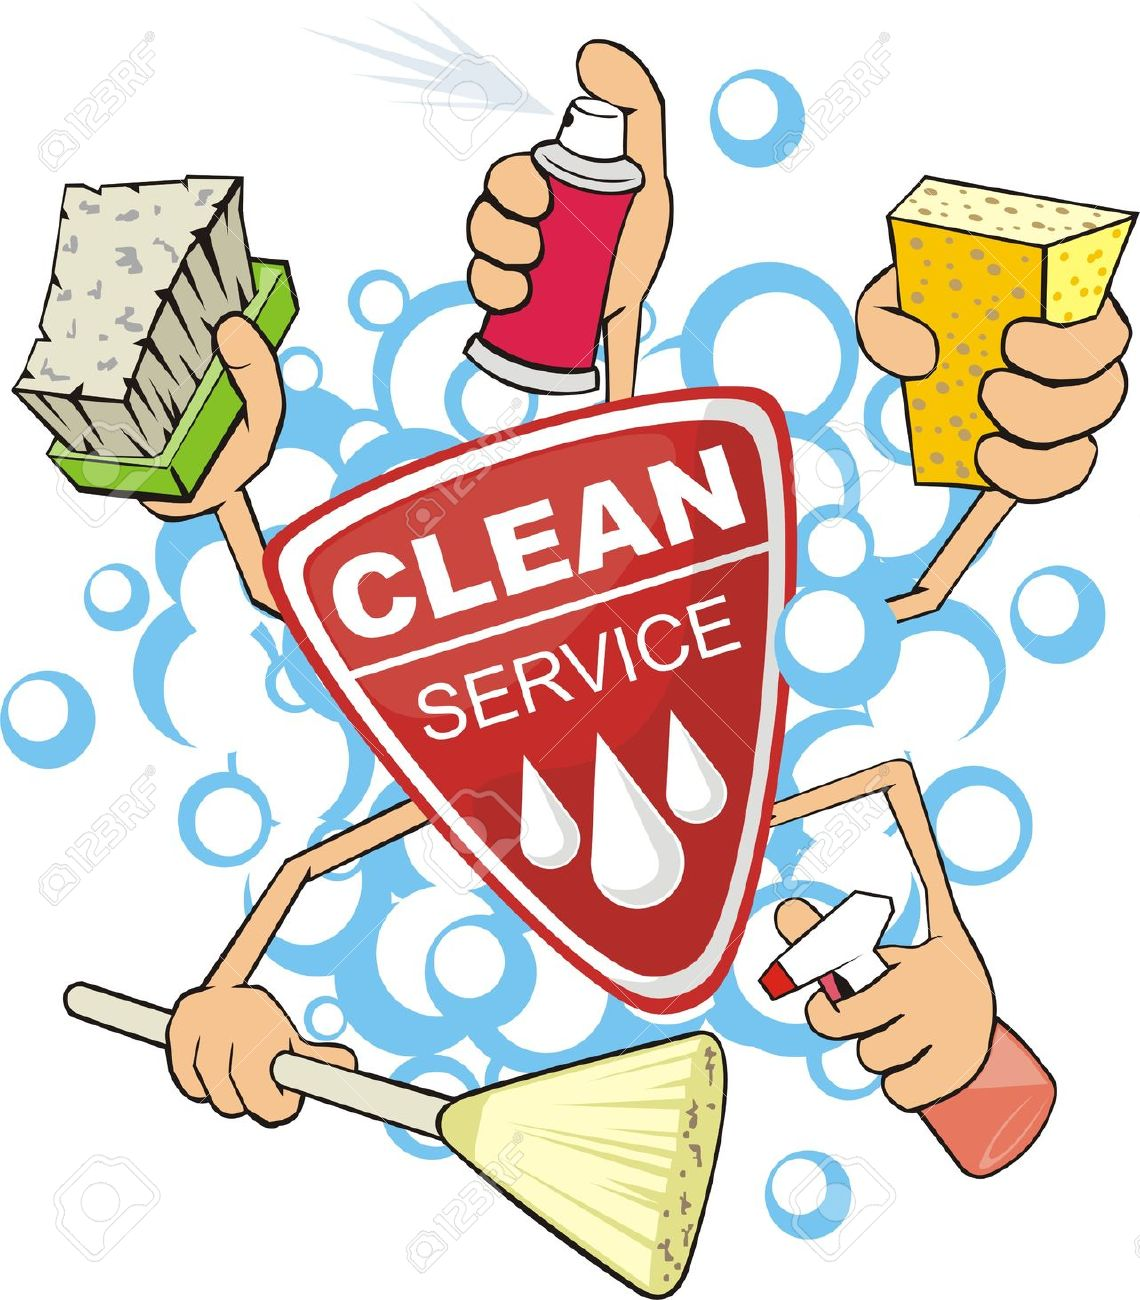 Clip Art Cleaning Supplies